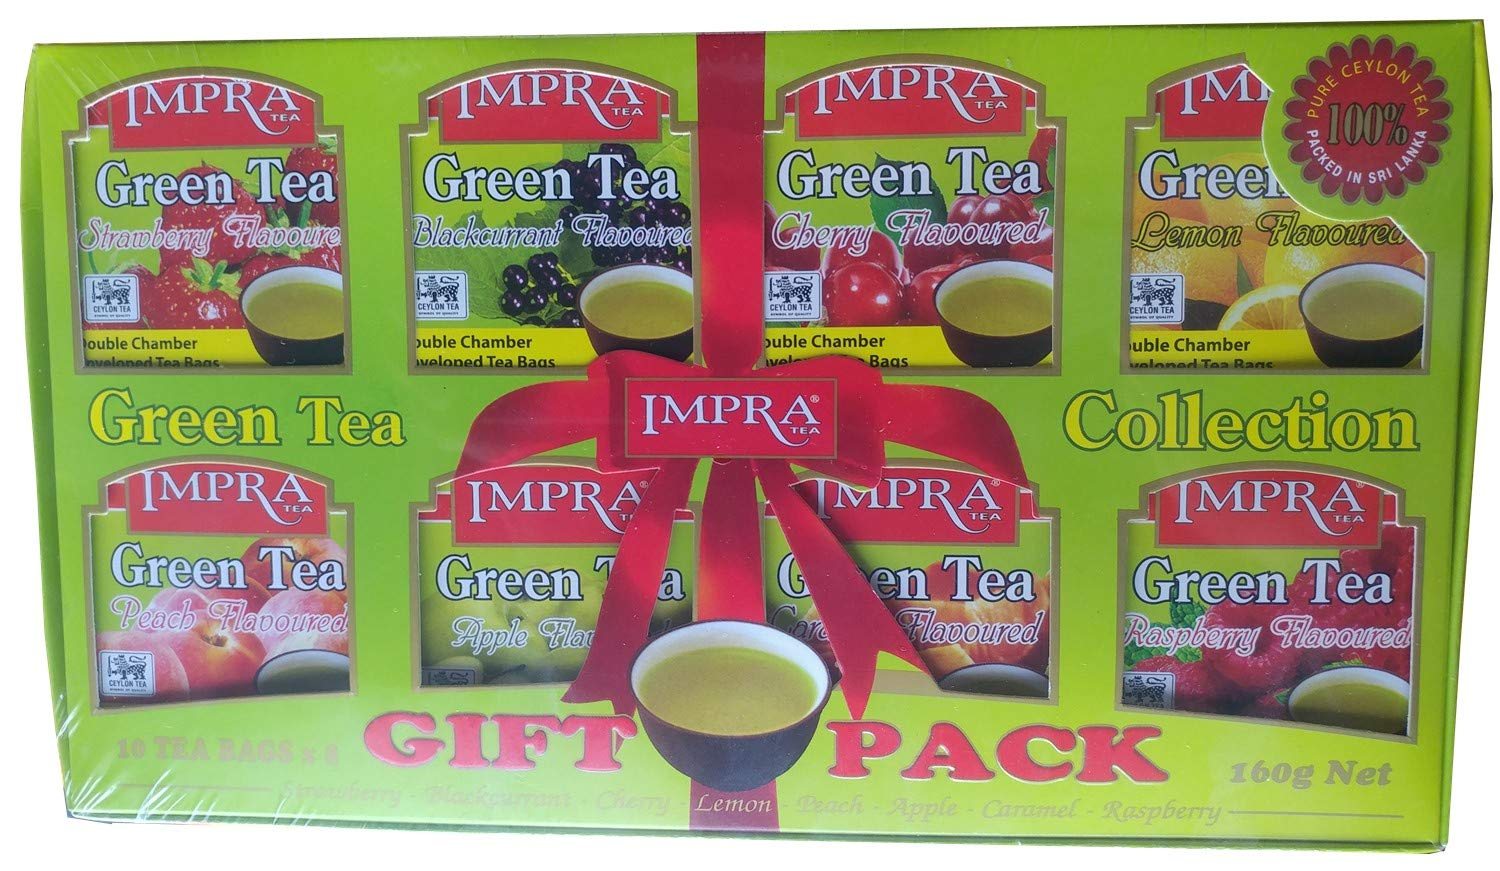 Impra Flavored Green Tea Gift Pack (8 Flavors), 80-count Tea Bags